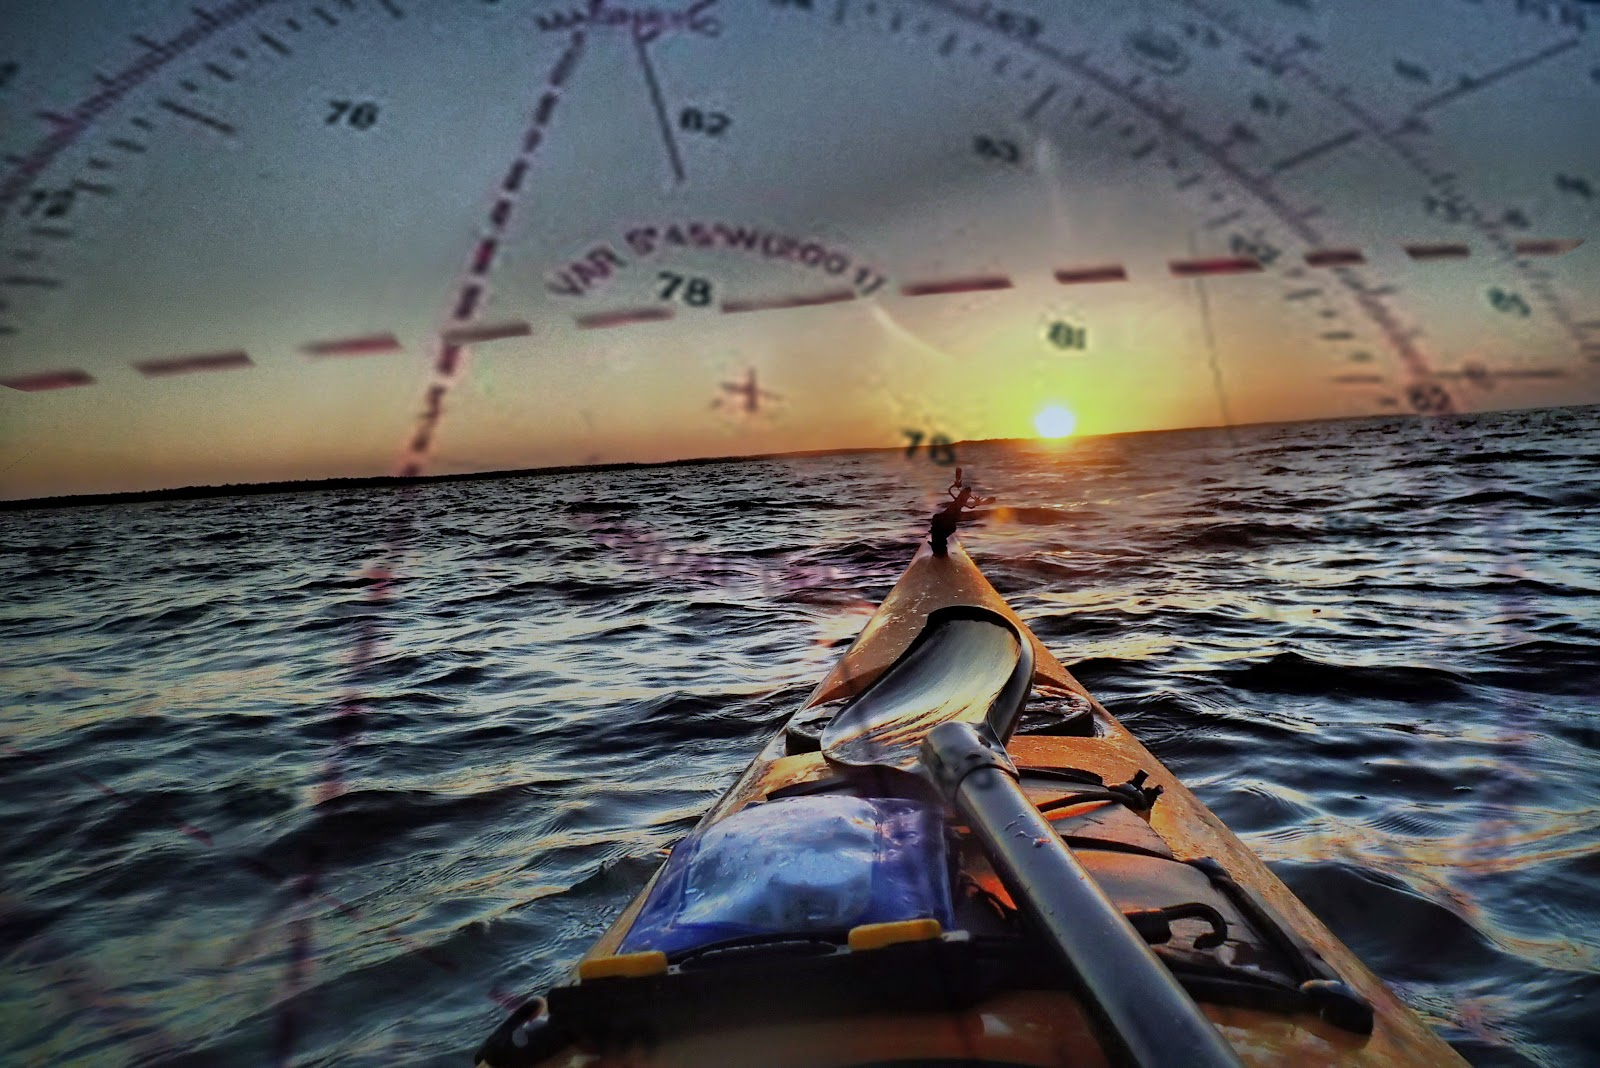 Navigating all night long - Everglades Challenge 2014